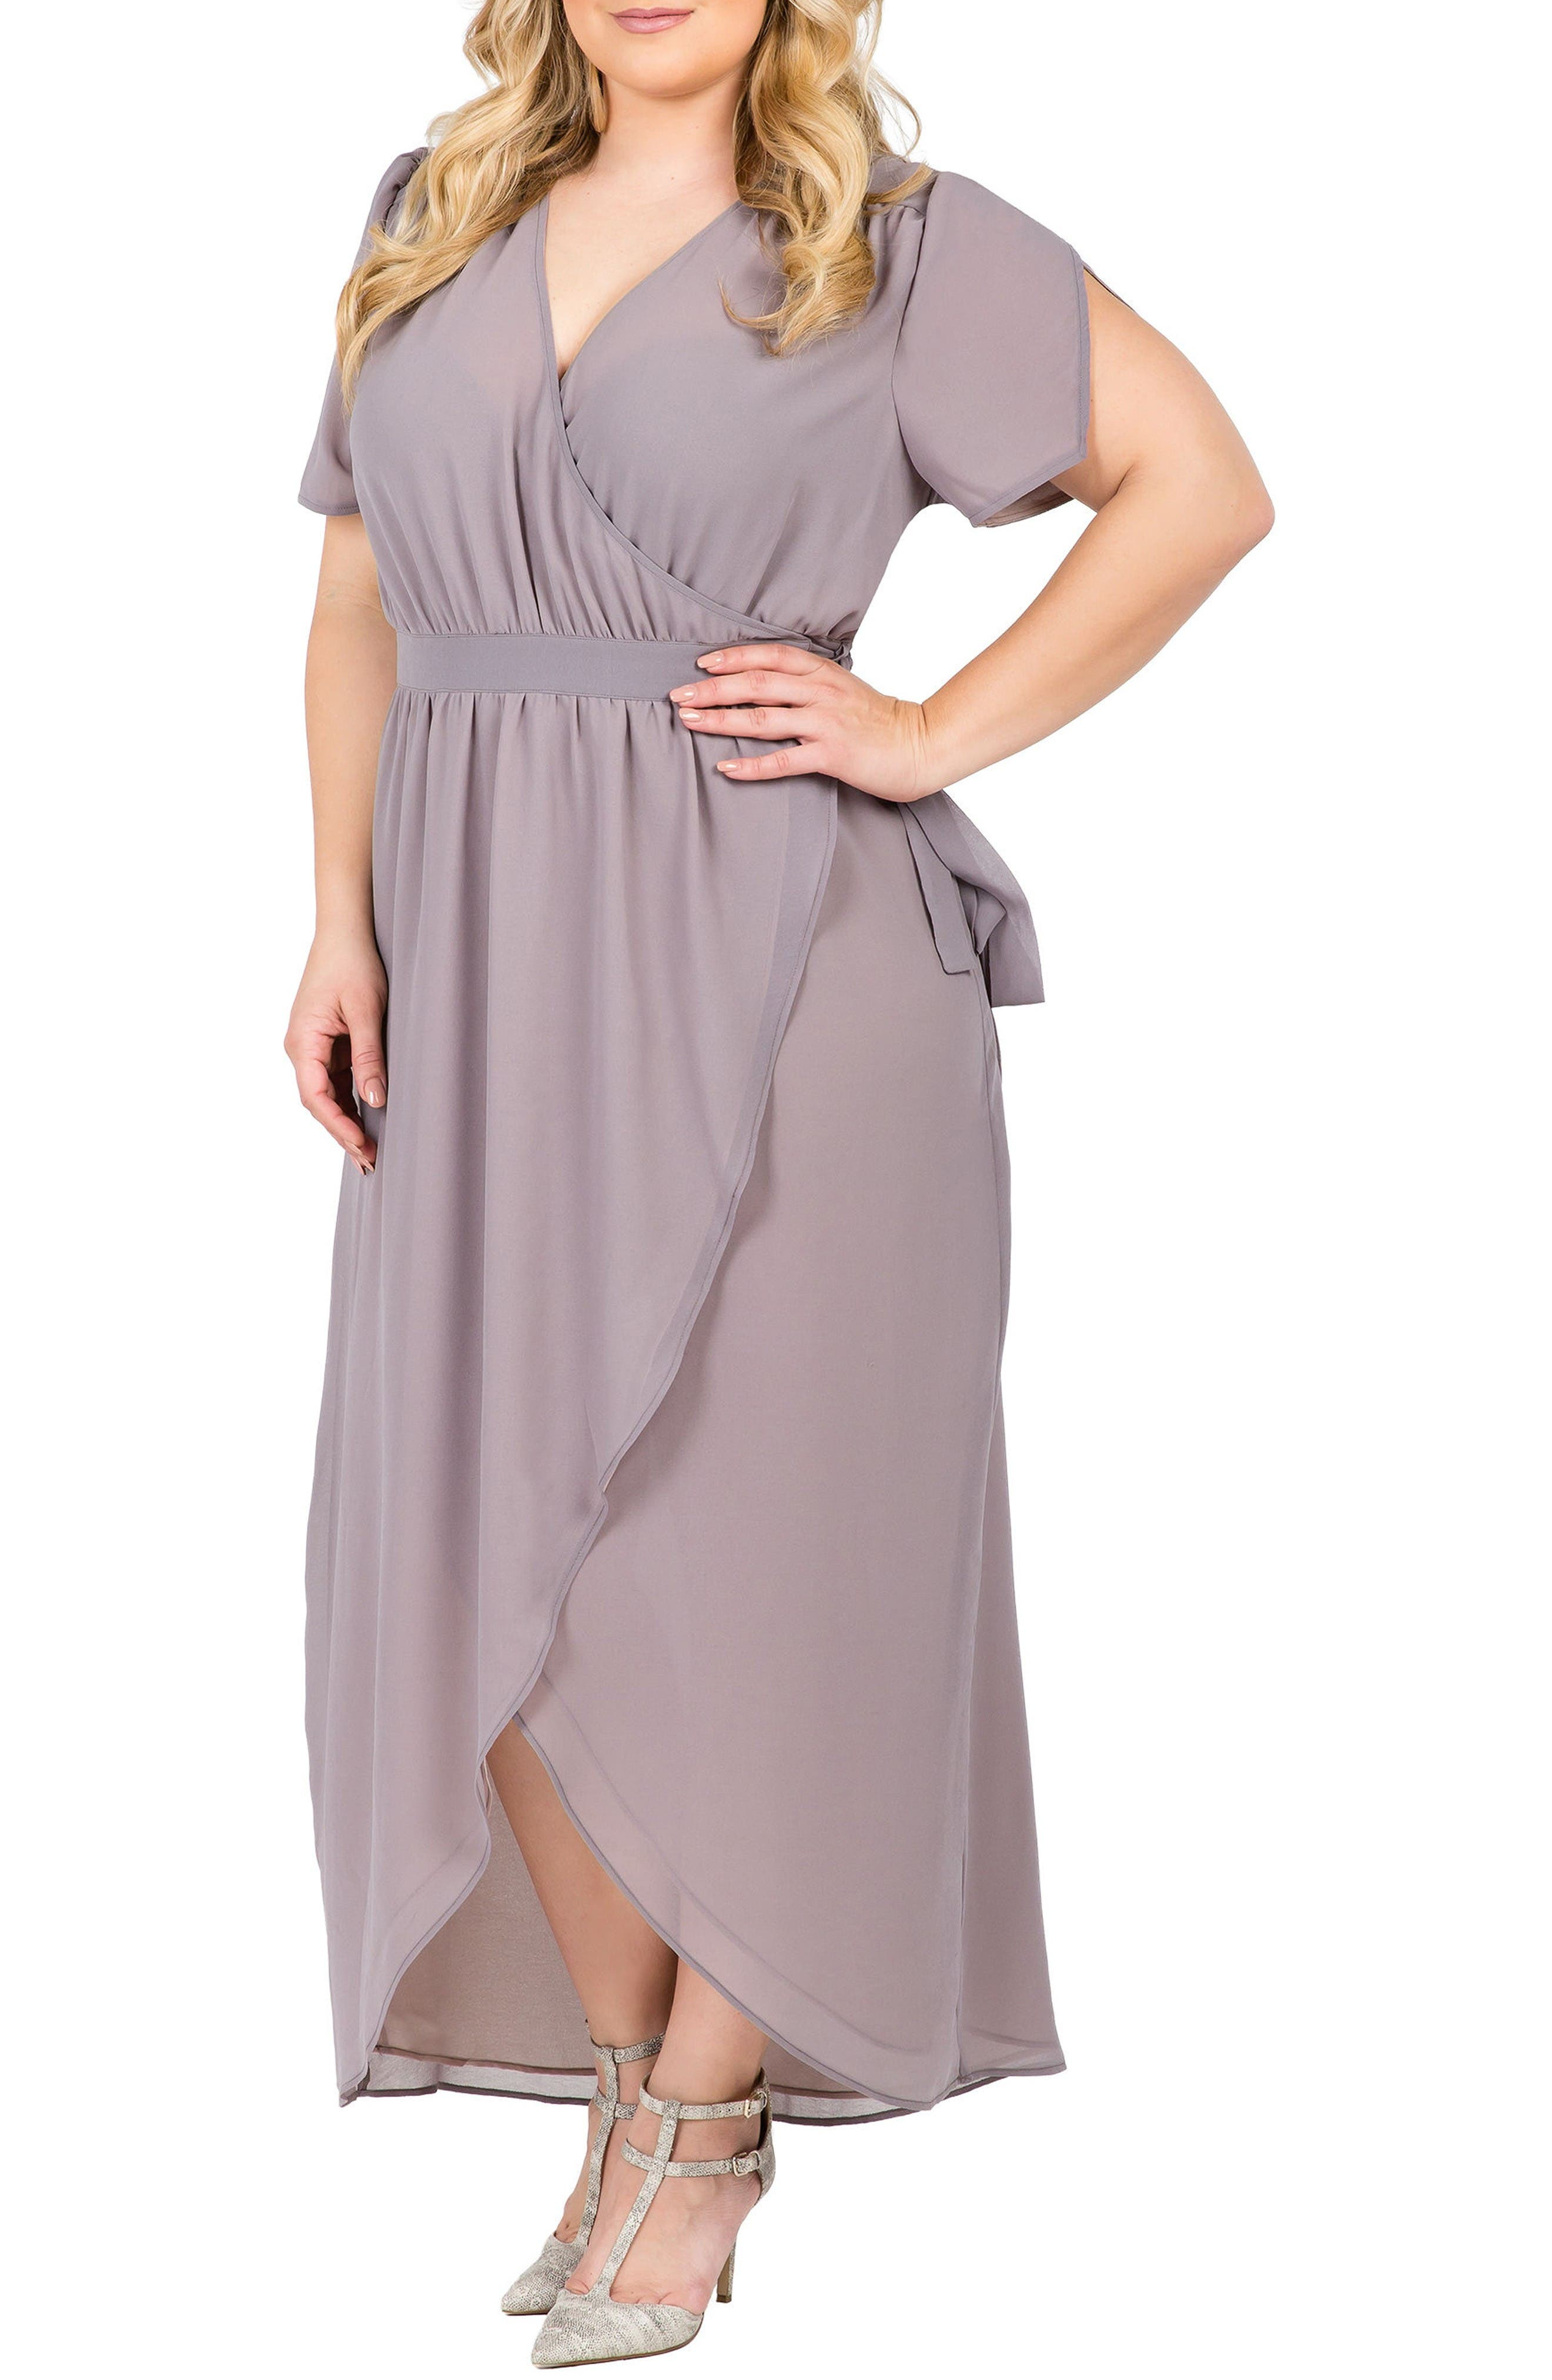 Cute fitted plus size dresses